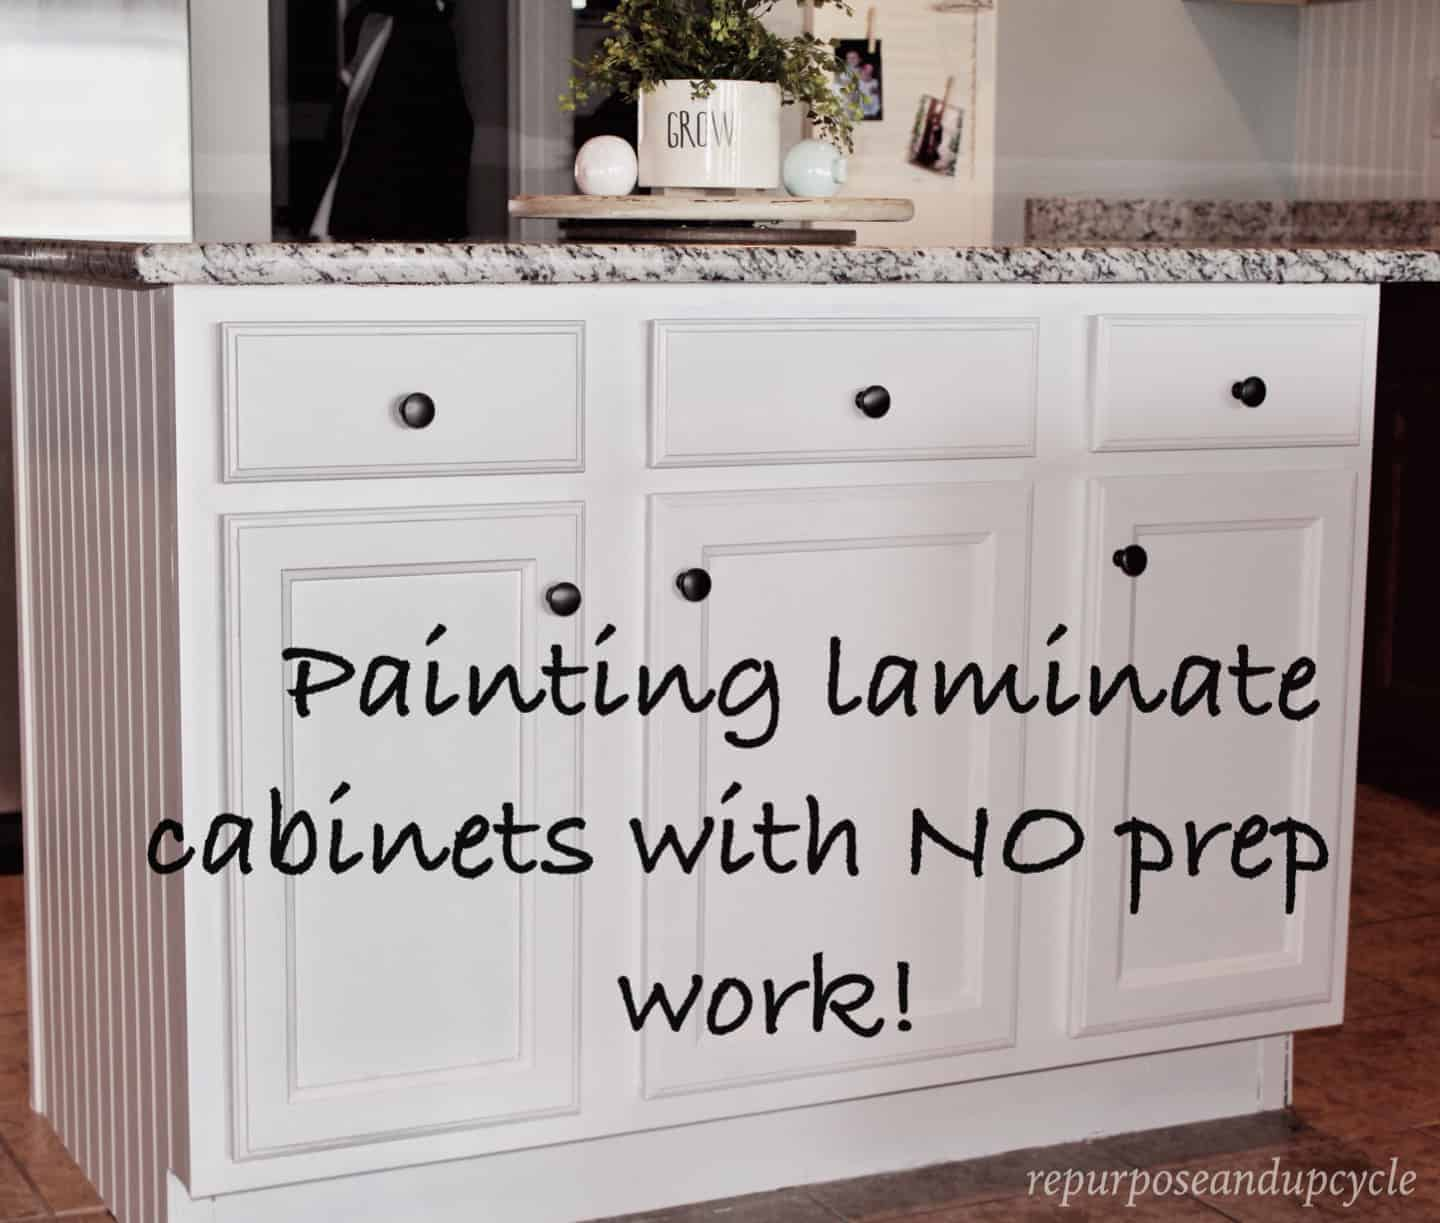 Painting Laminate Cabinets The Right Way Without Sanding,Full Hd Black And White Wallpaper Hd For Mobile